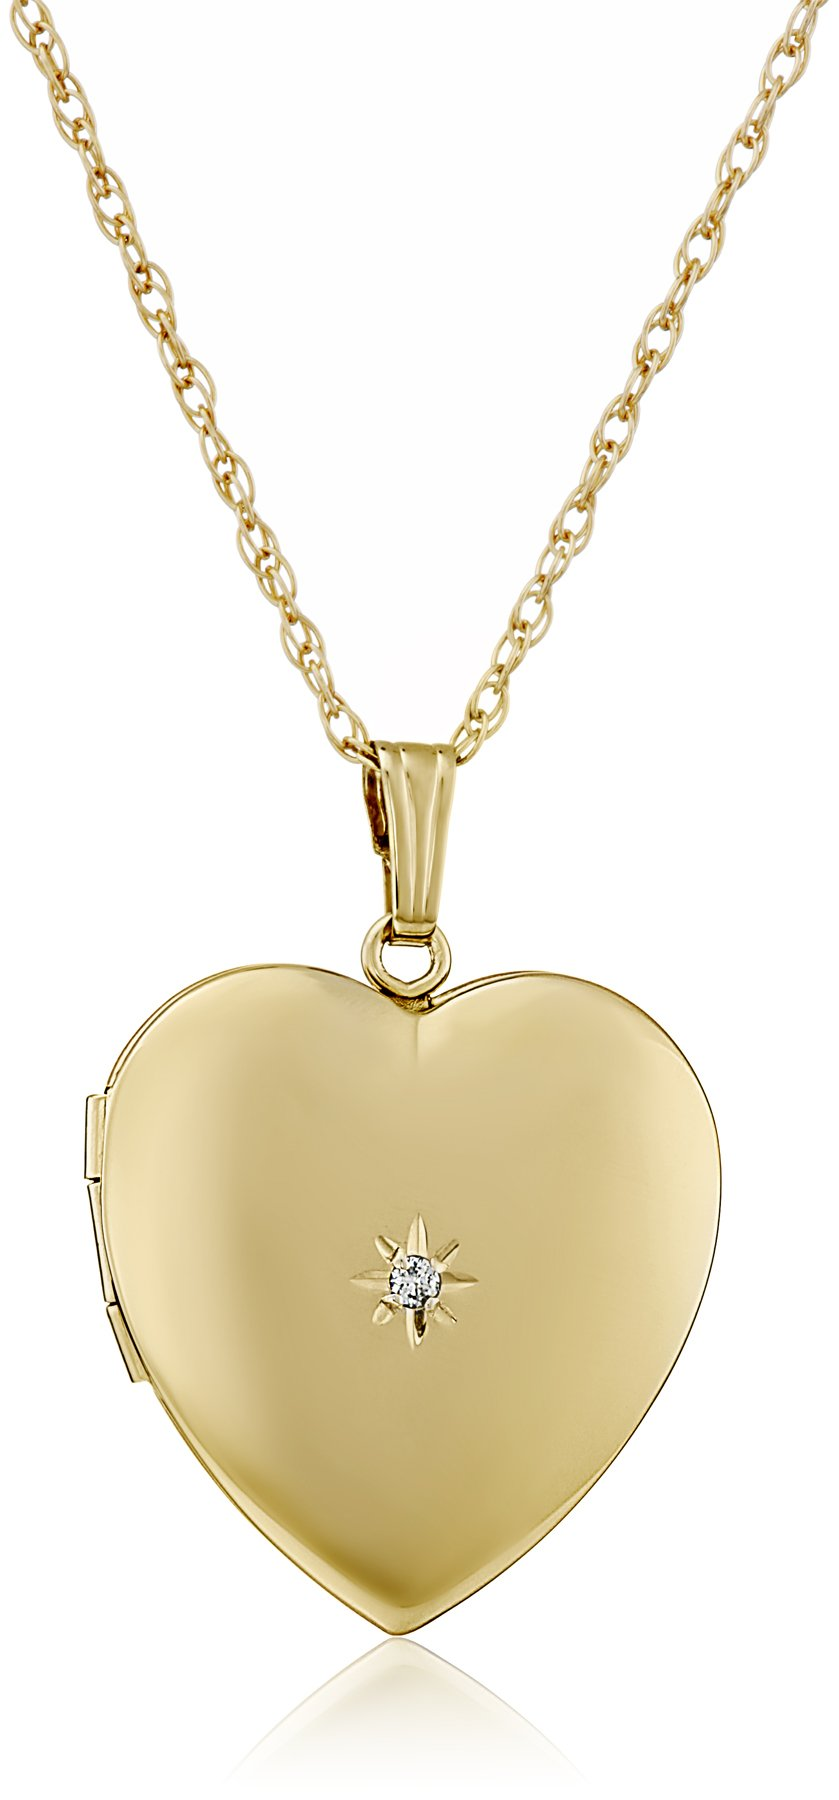 14k Yellow Gold-Filled Diamond-Accent Heart Locket Necklace, 20''